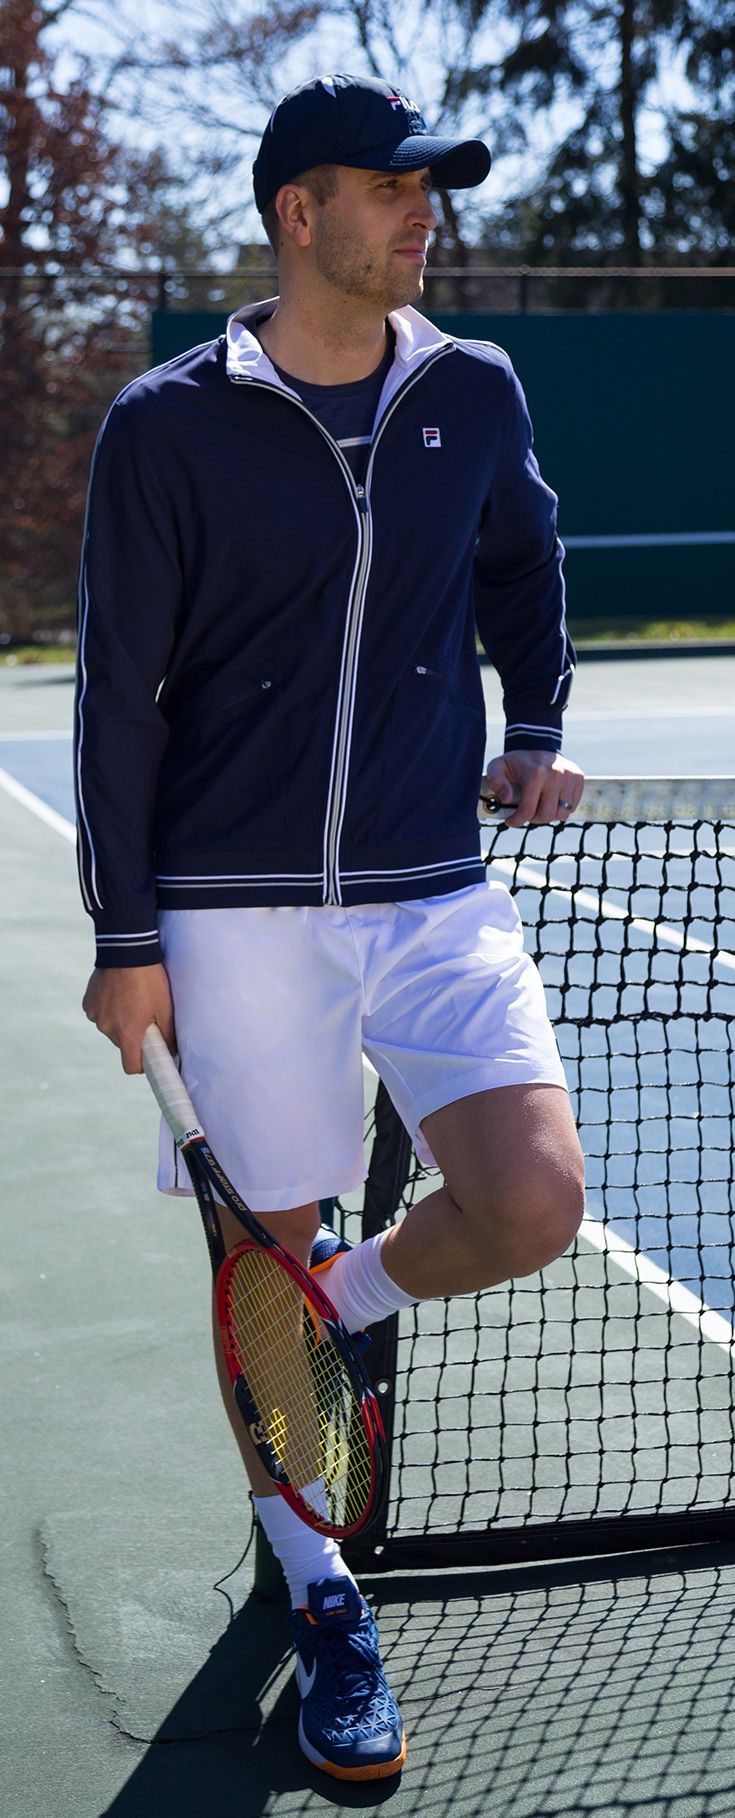 Shop Men S Fila Tennis Apparel At Midwestsports Com Http Www Midwestsports Com Fila Mens Tennis Apparel C 708 Tennis Clothes Mens Tennis Apparel